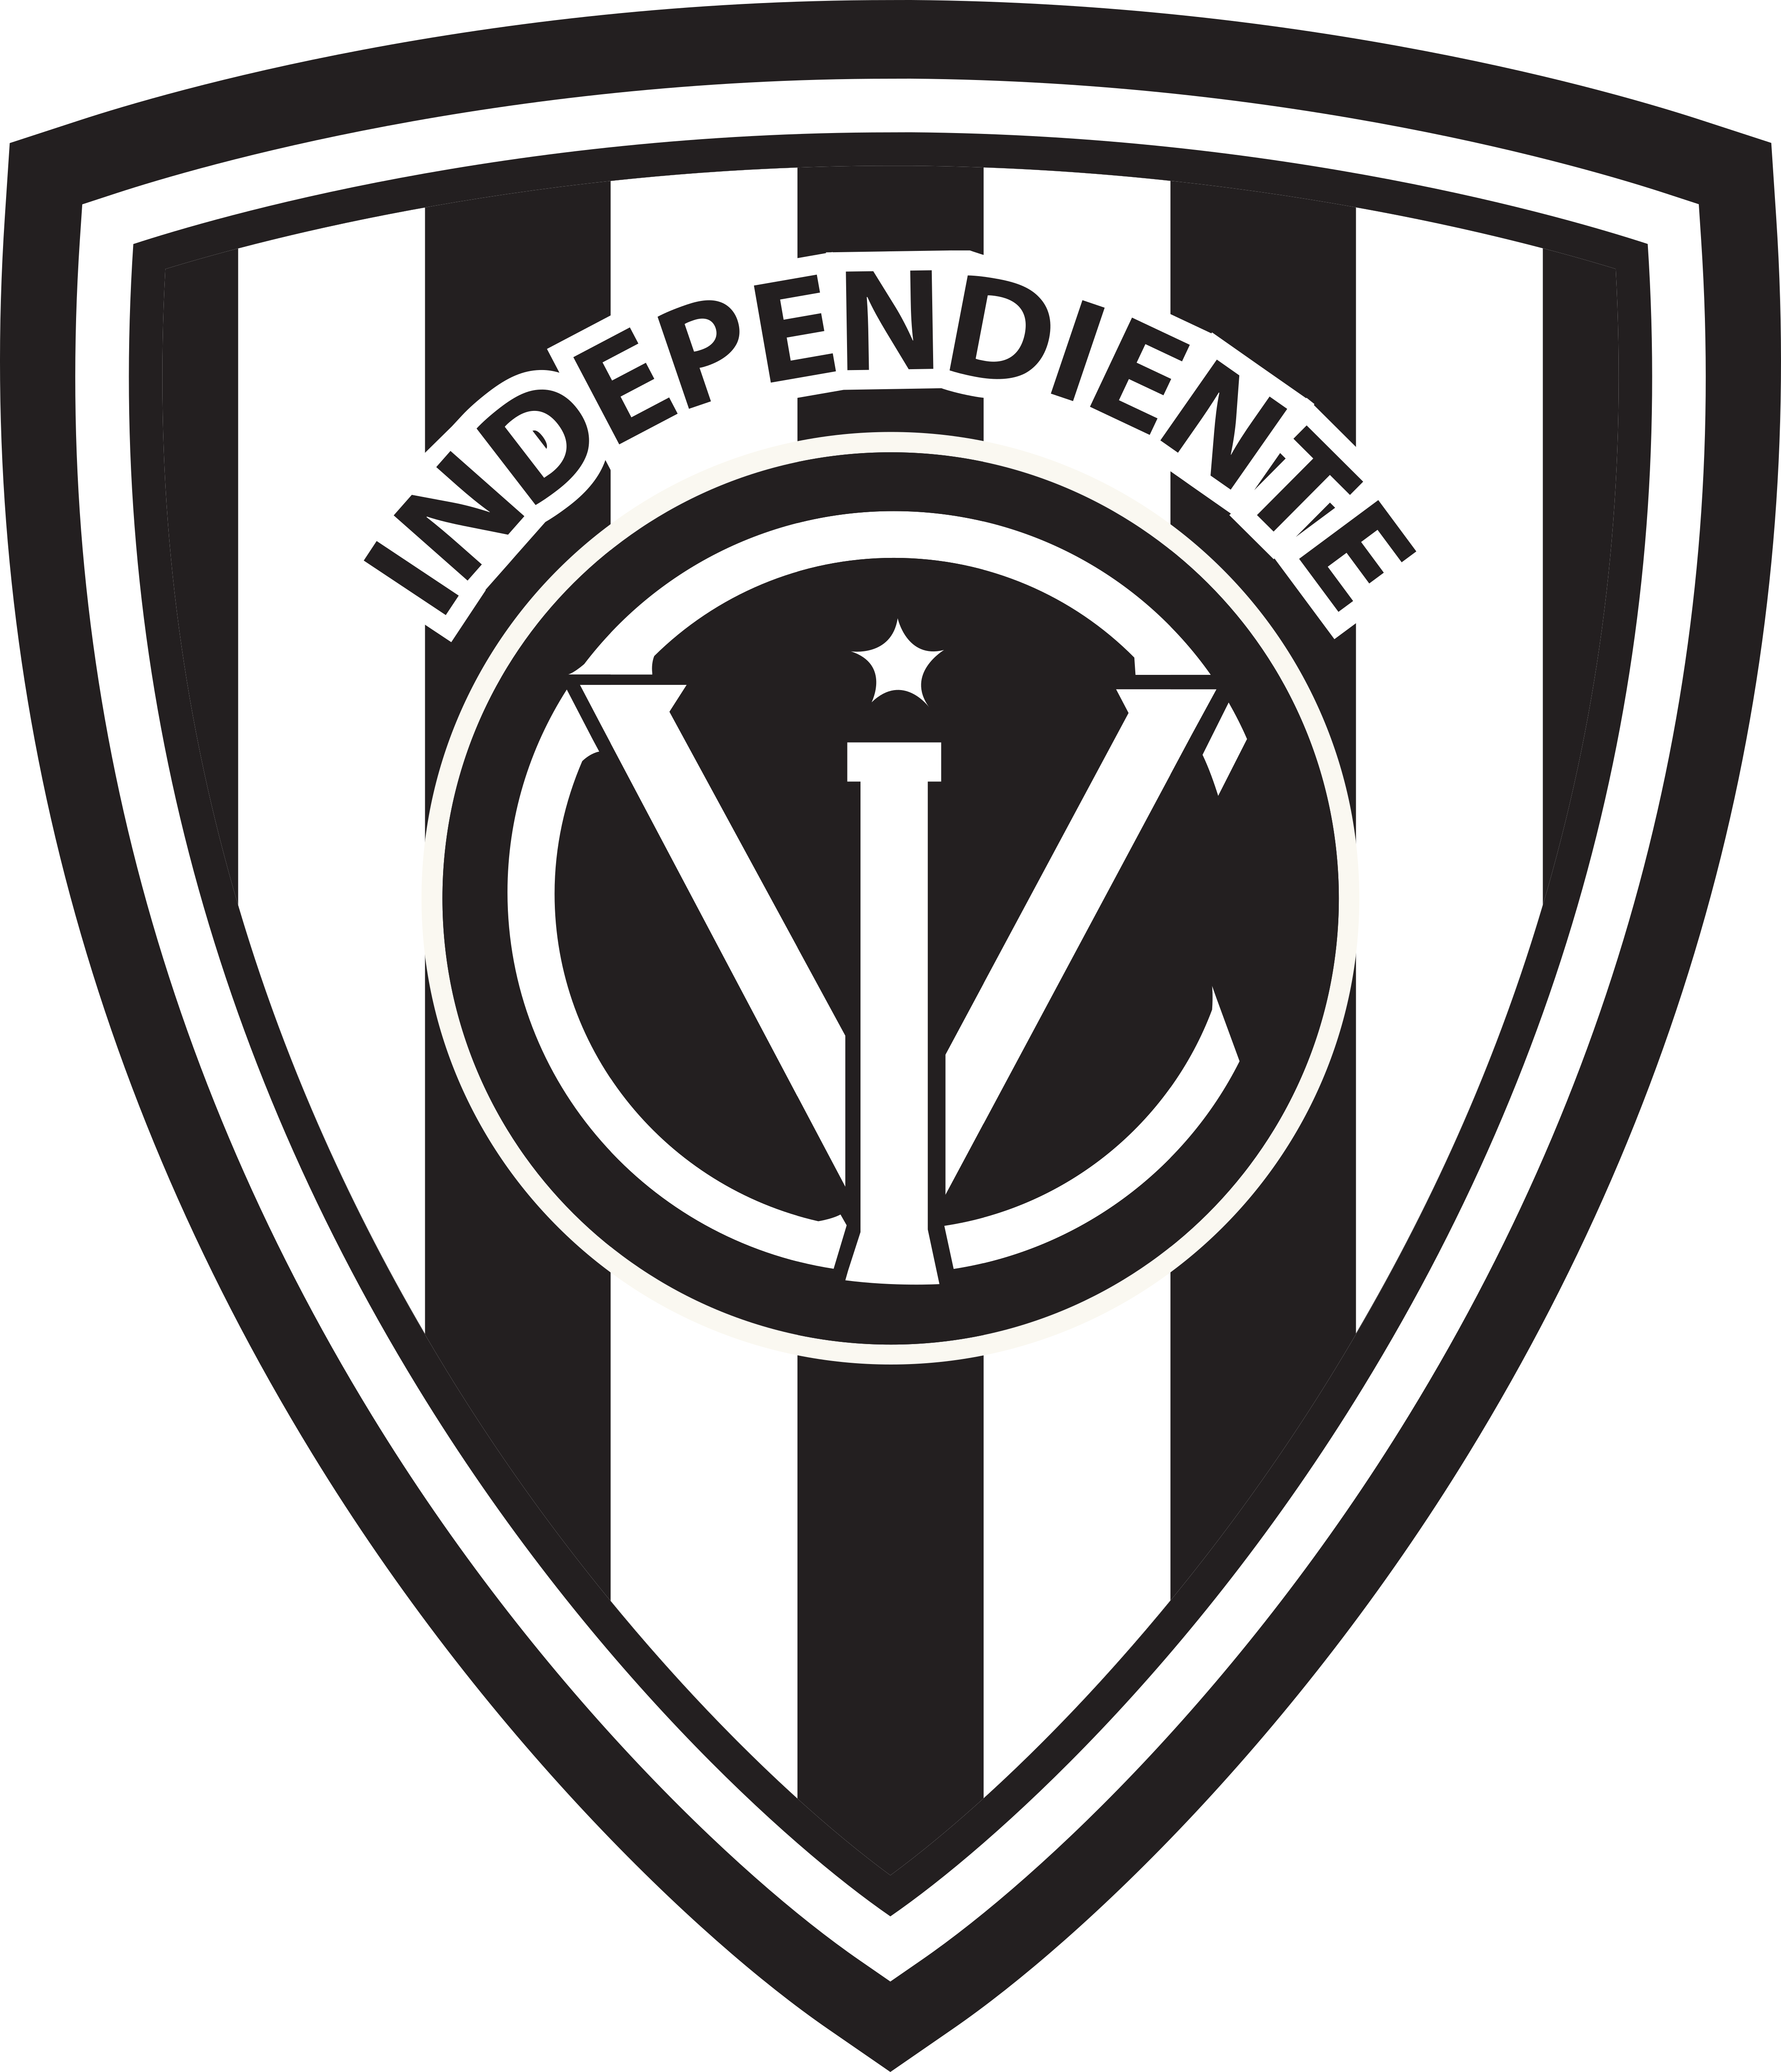 https://logodownload.org/wp-content/uploads/2020/02/independiente-del-valle-logo.png